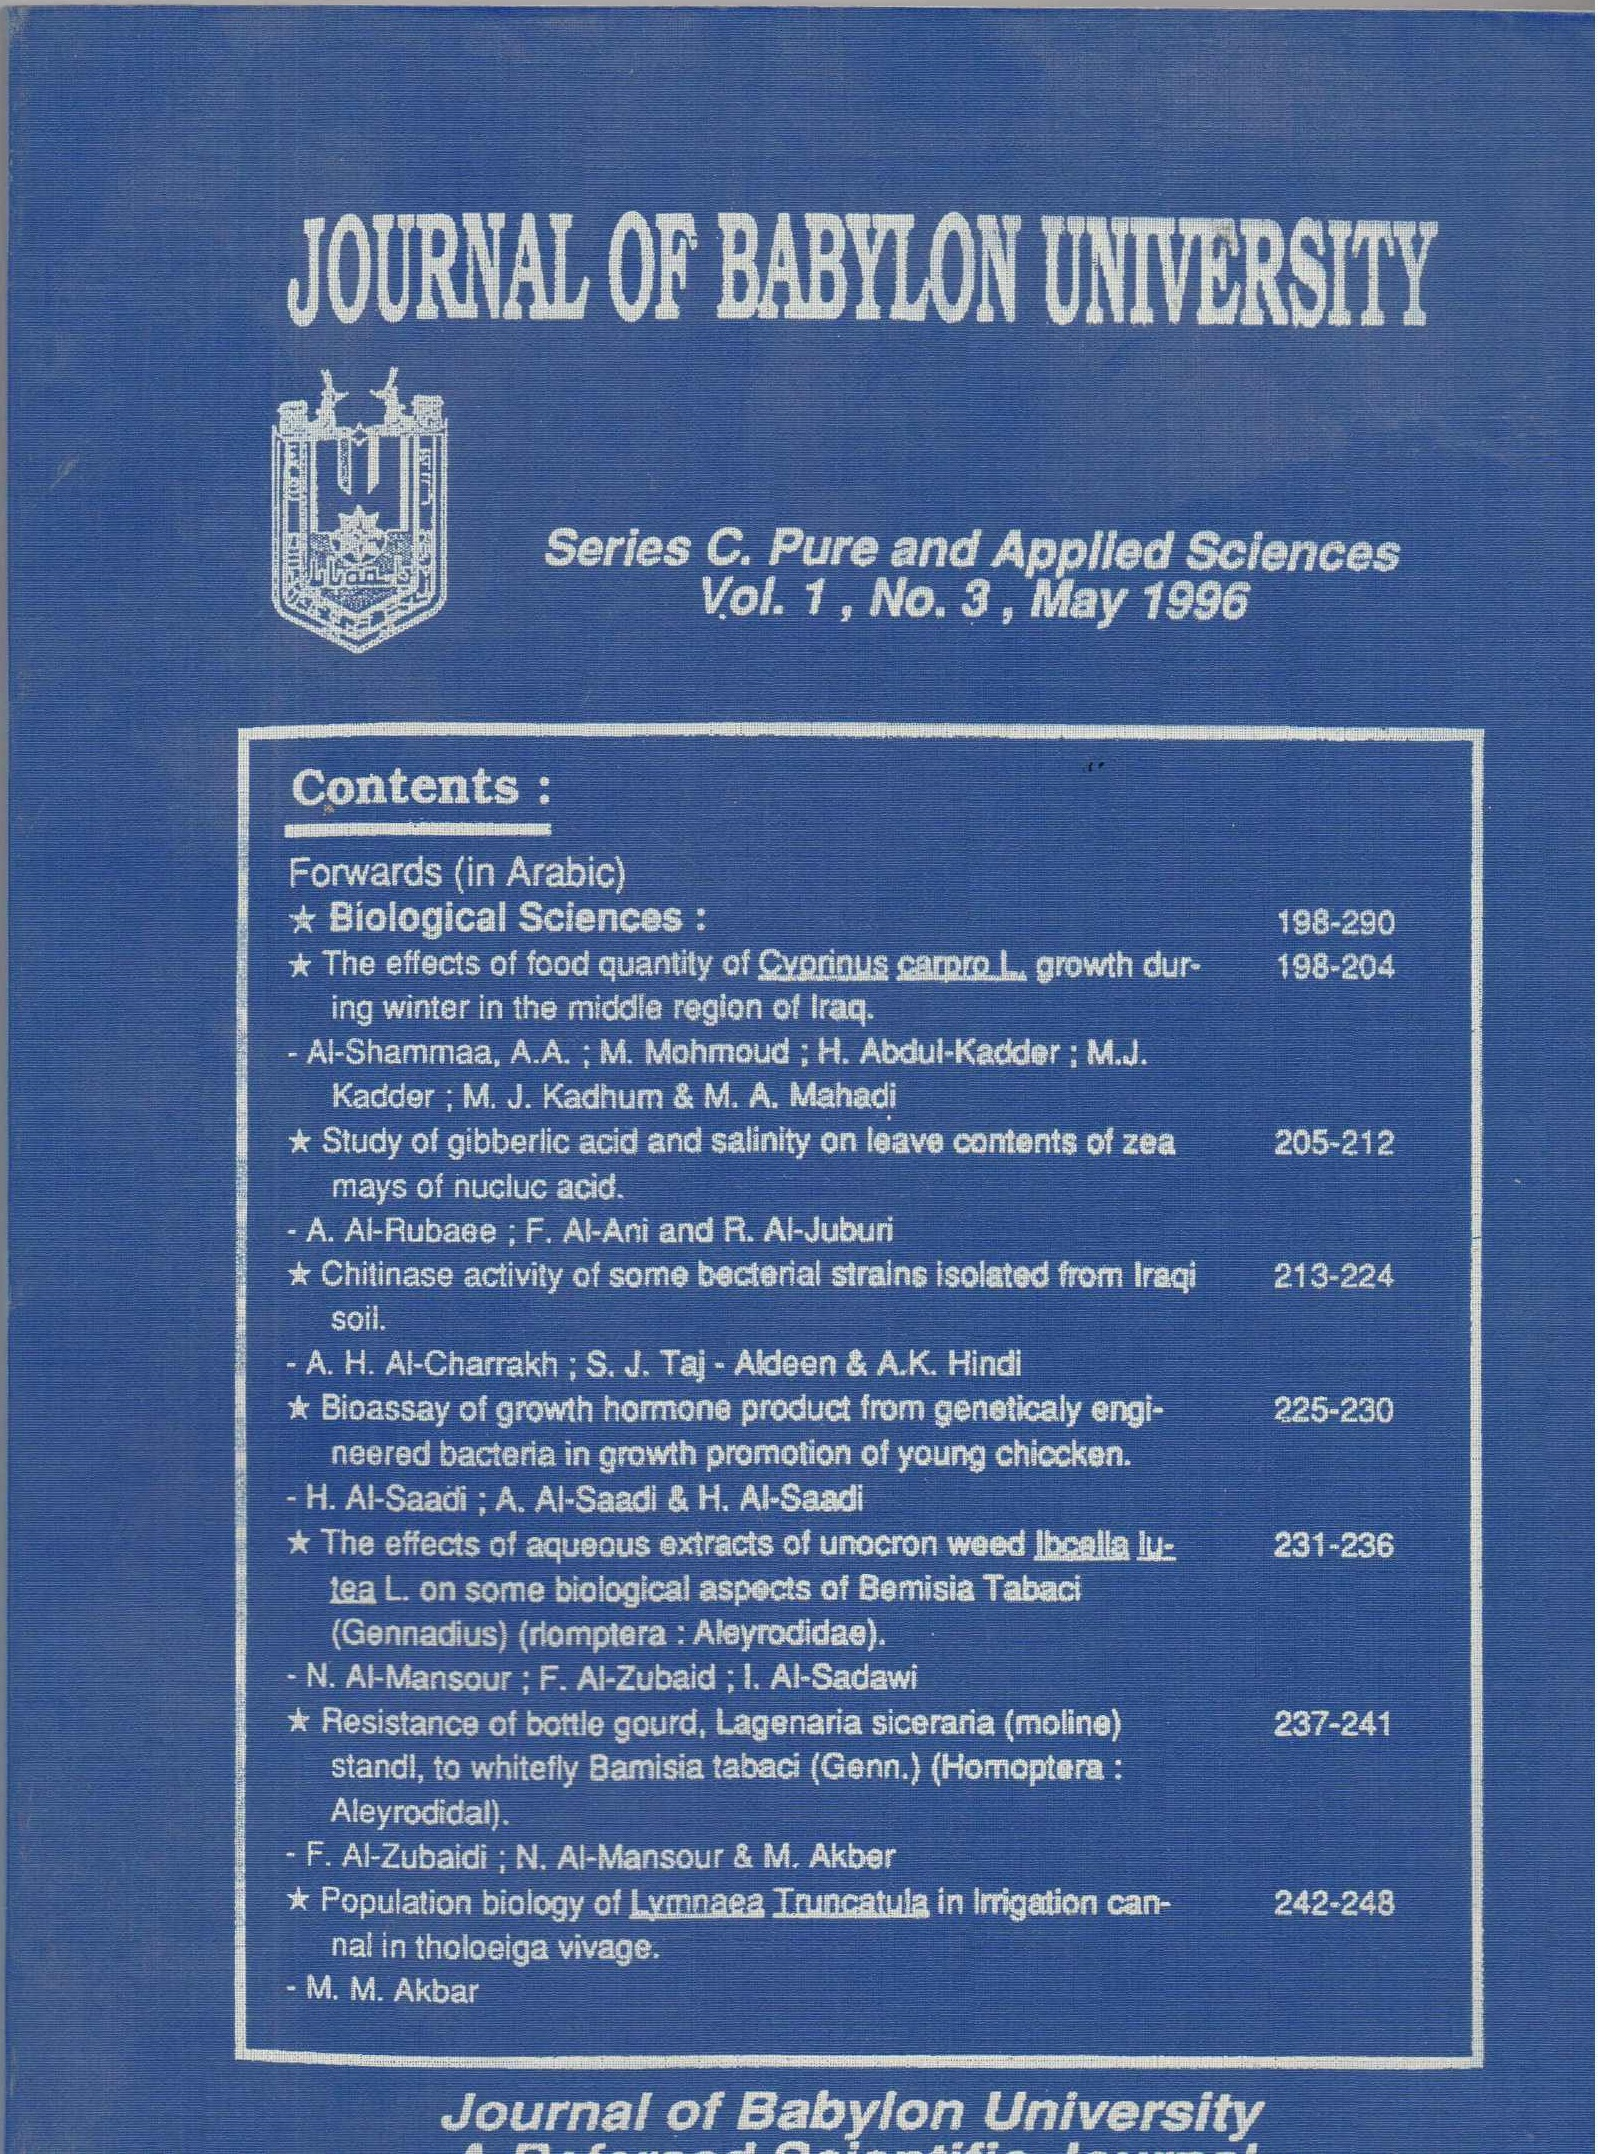 Pure and Applied Sciences Section Vol 1 No 3 (1996)